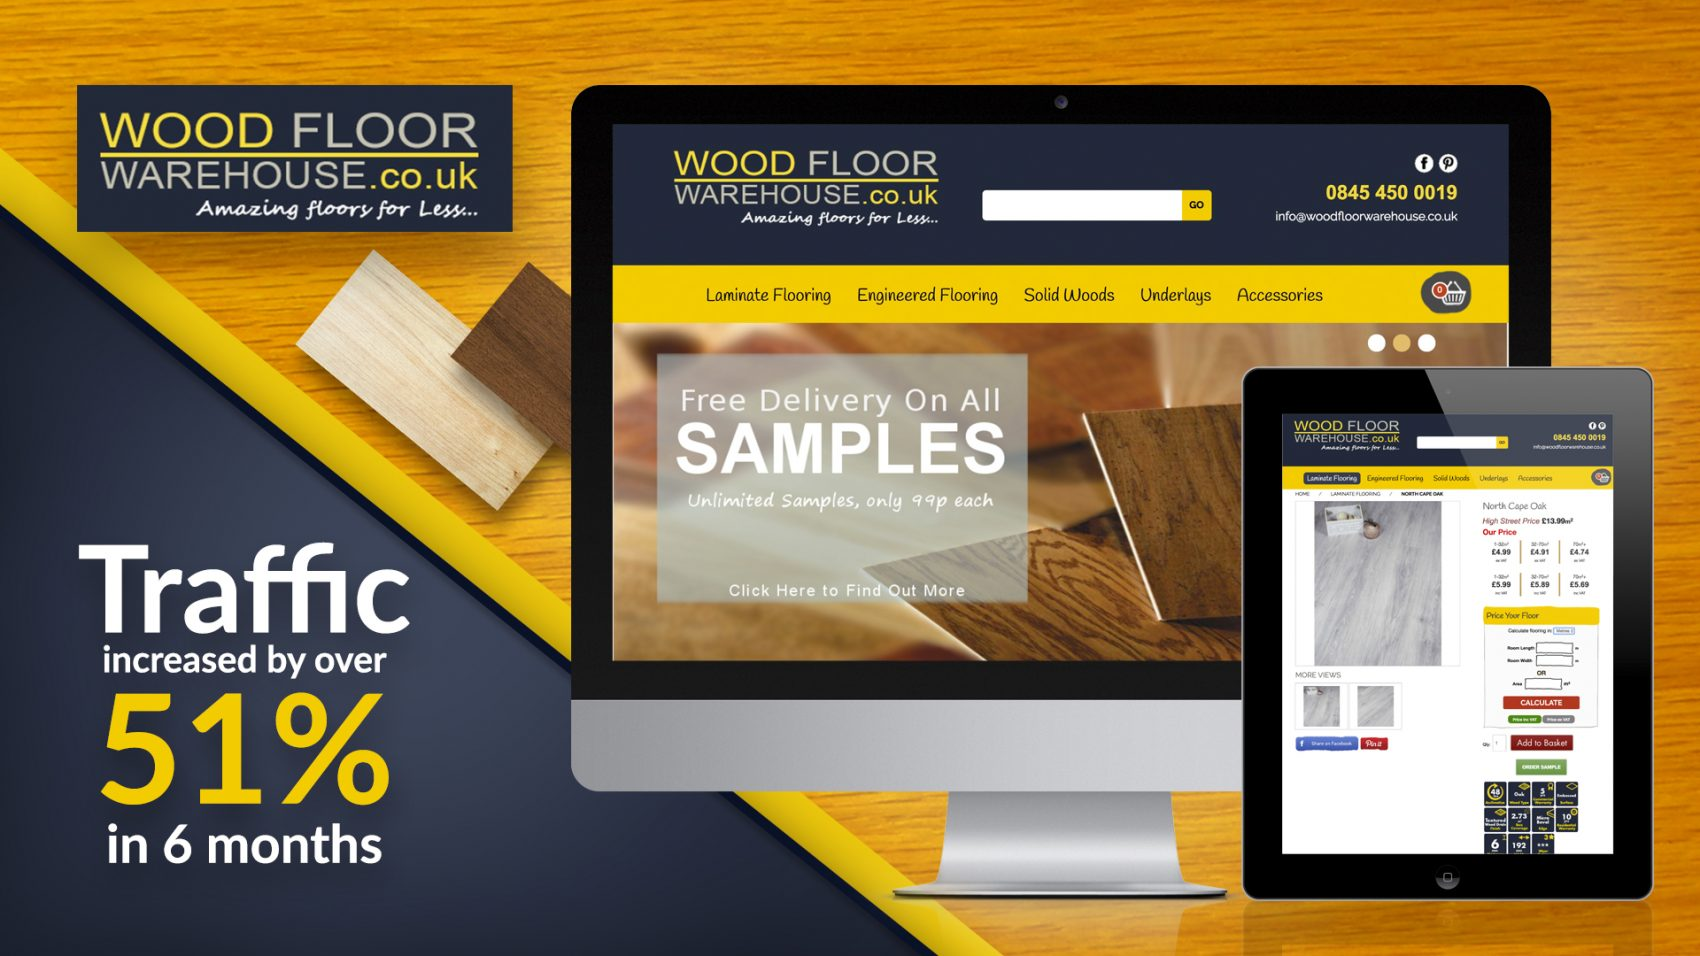 woodfloor warehouse seo dublin results